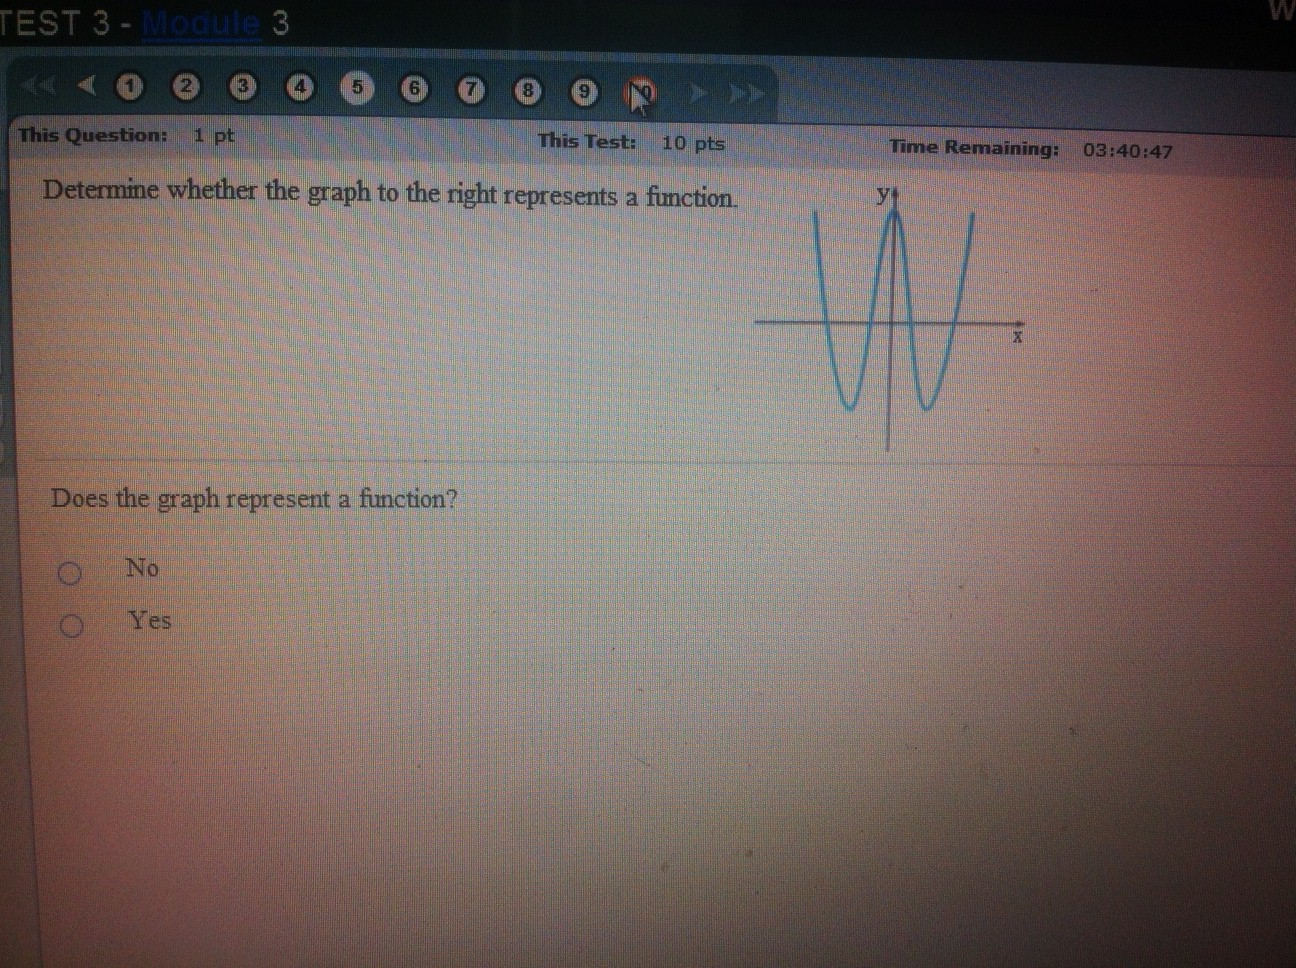 Determine whether the graph to the right represent